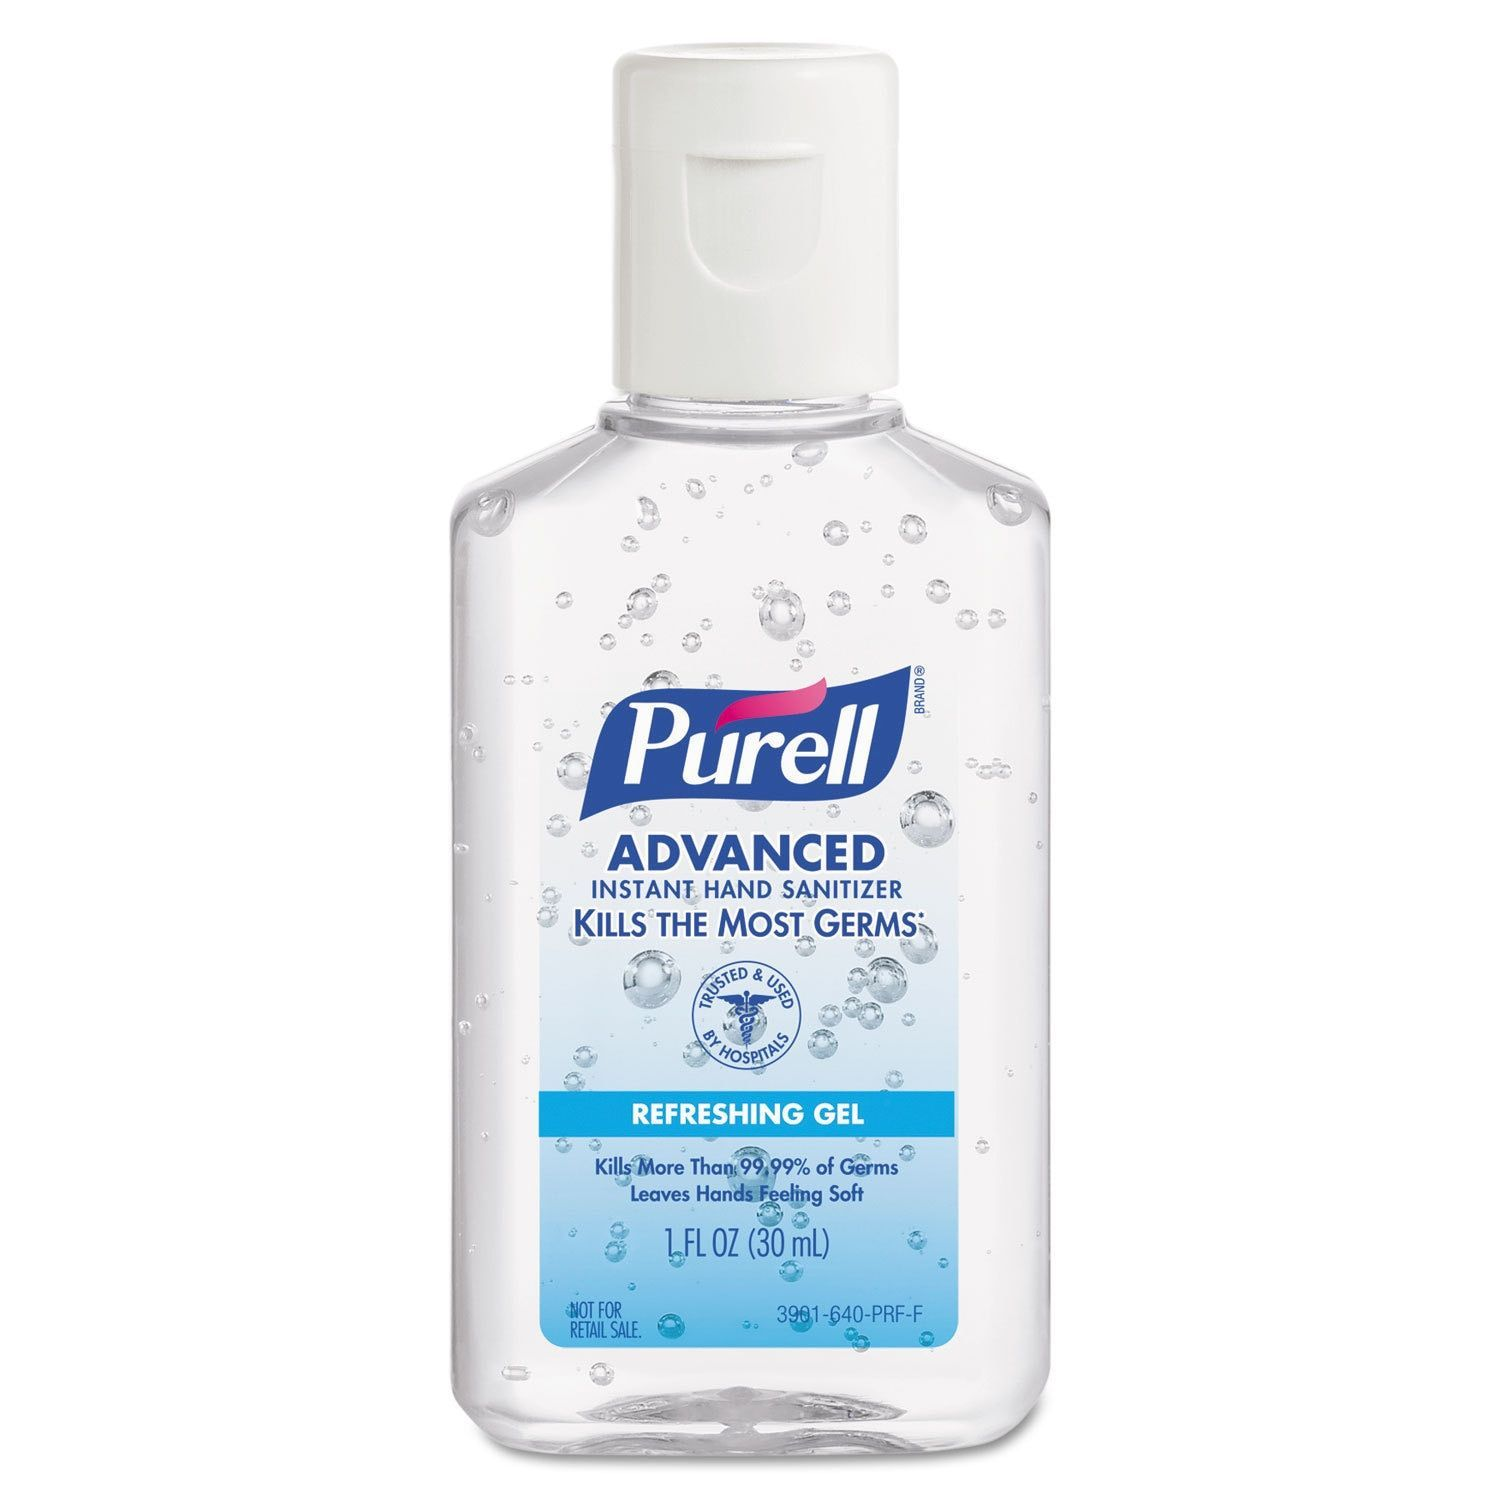 Purell Advanced Instant Hand Sanitizer Gel 1 Ounce Bottle Lemon